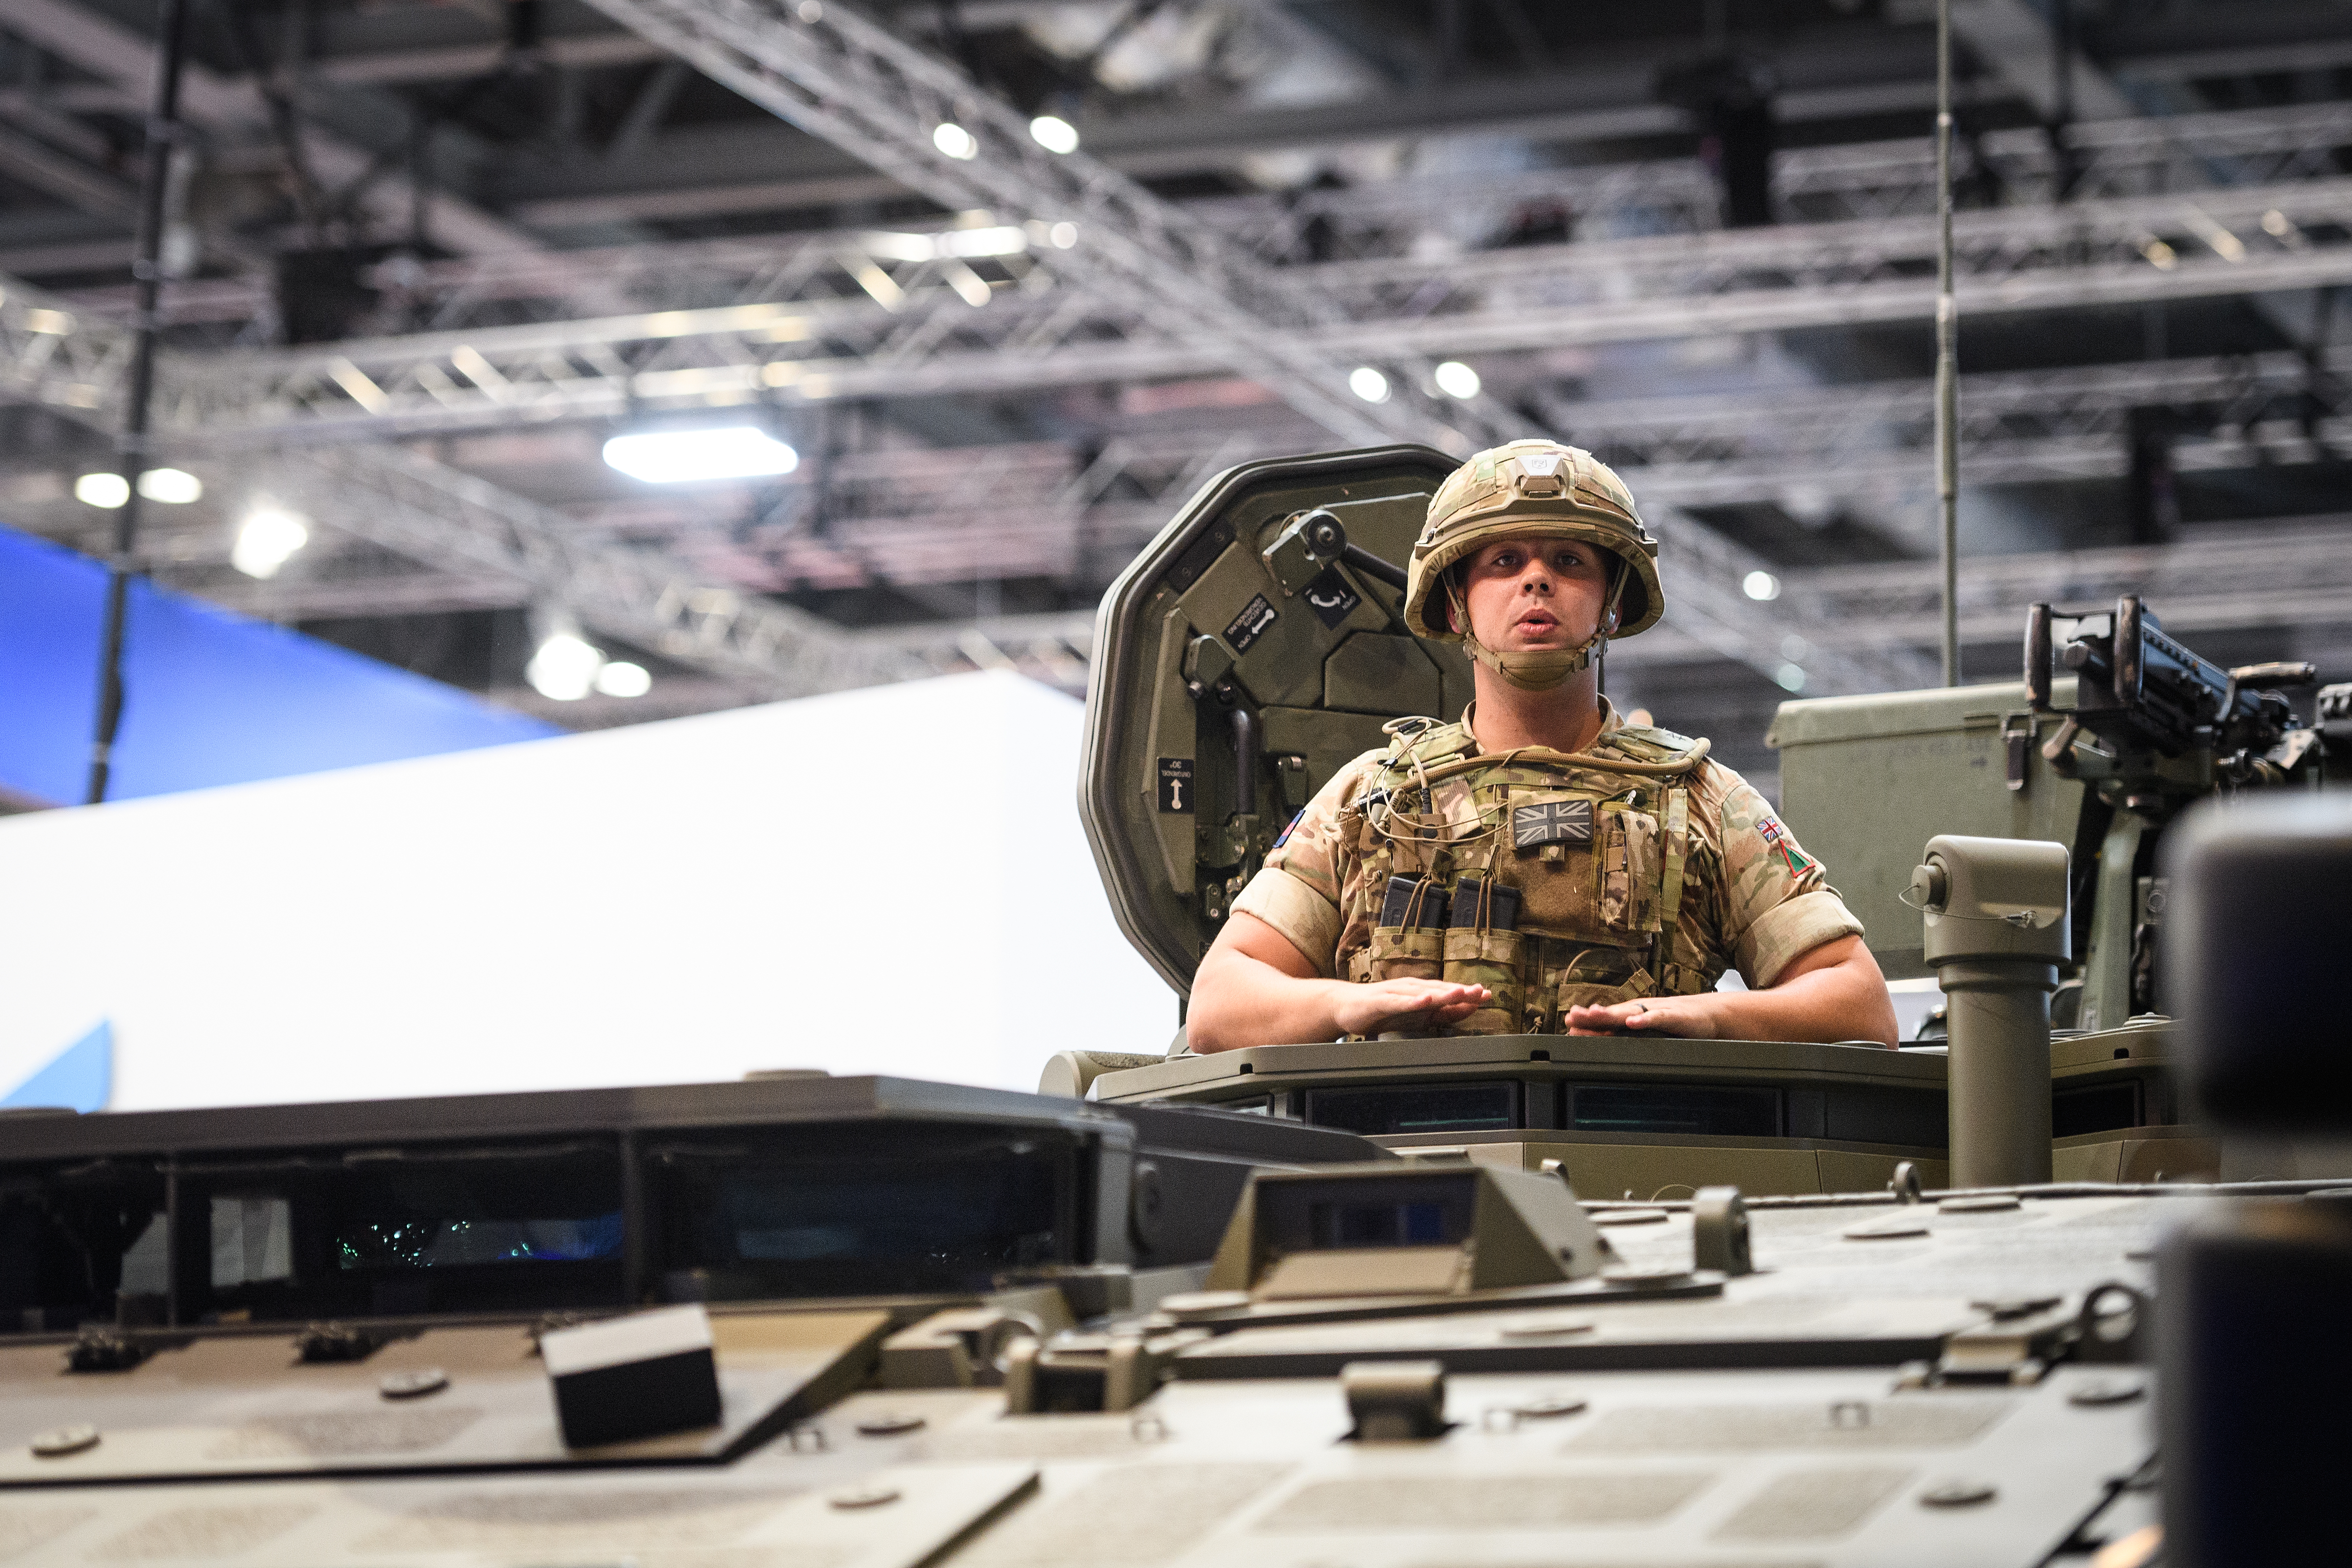 A soldier sits in a Boxer armored vehicle at the DSEI arms fair in London on Sept. 11, 2019. Held every two years, the event is the world's largest arms fair. (Leon Neal/Getty Images)